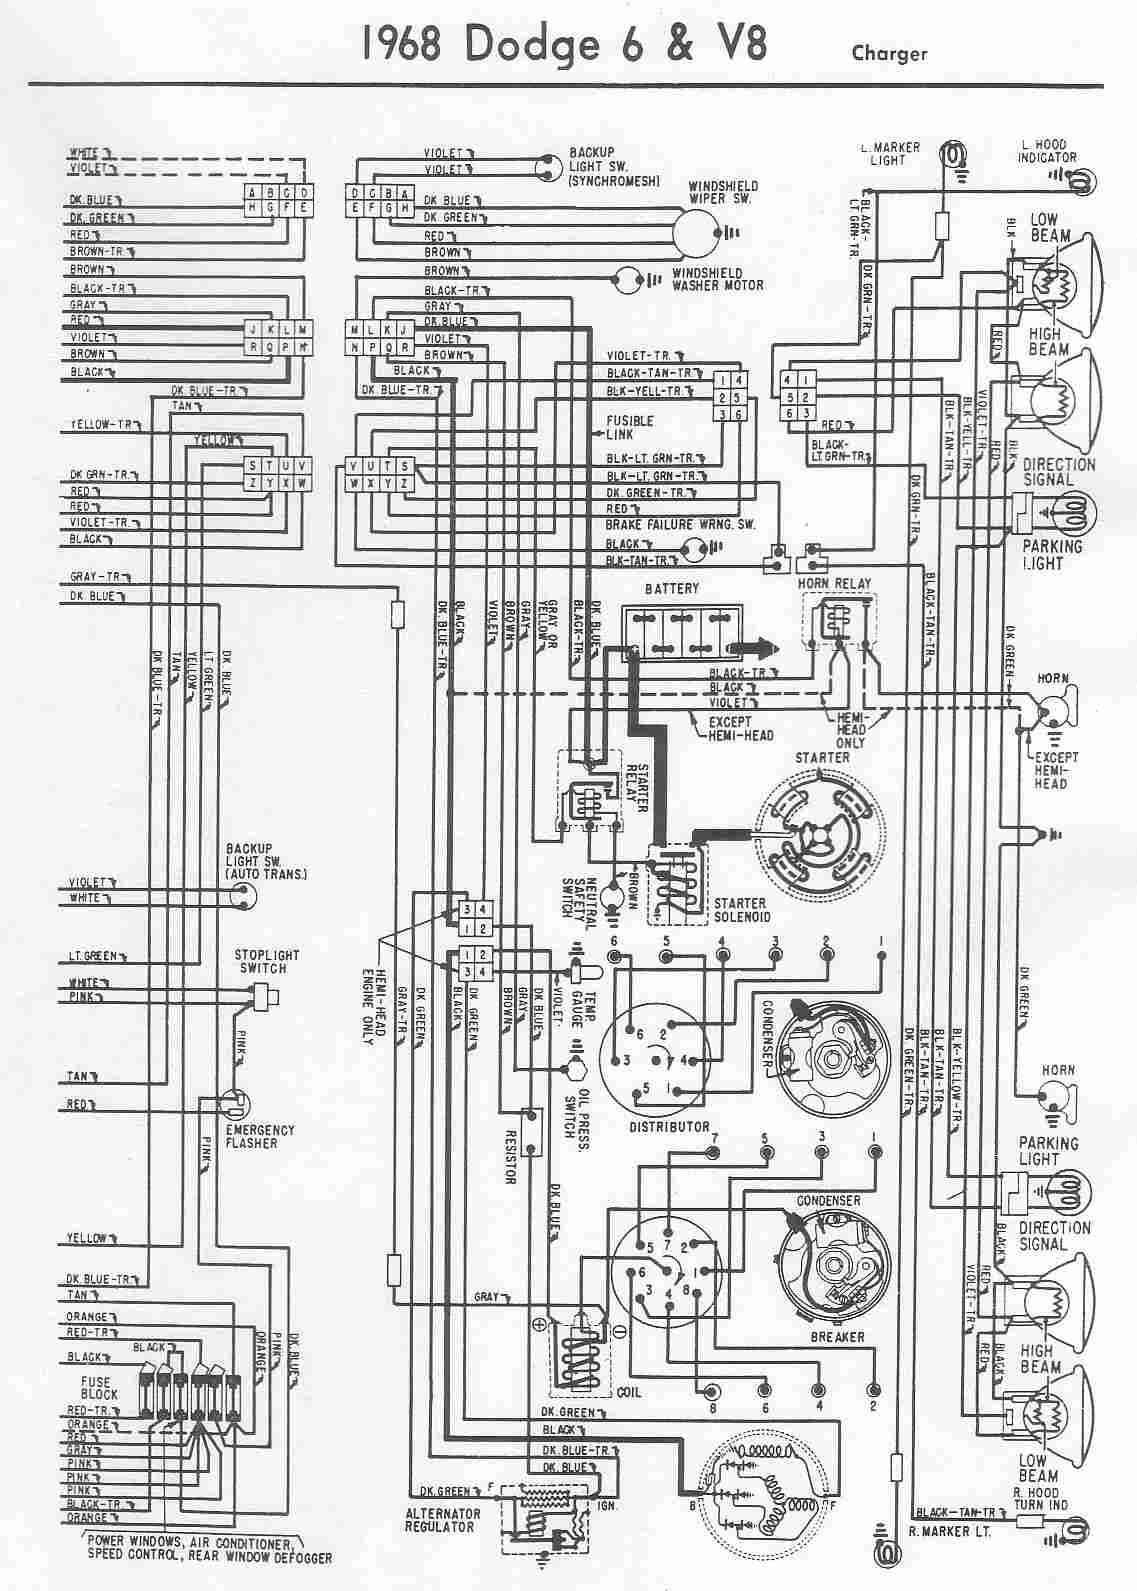 Dodge Car Manuals Wiring Diagrams Pdf Fault Codes 1996 Polaris Magnum 425 4x4 Diagram Download